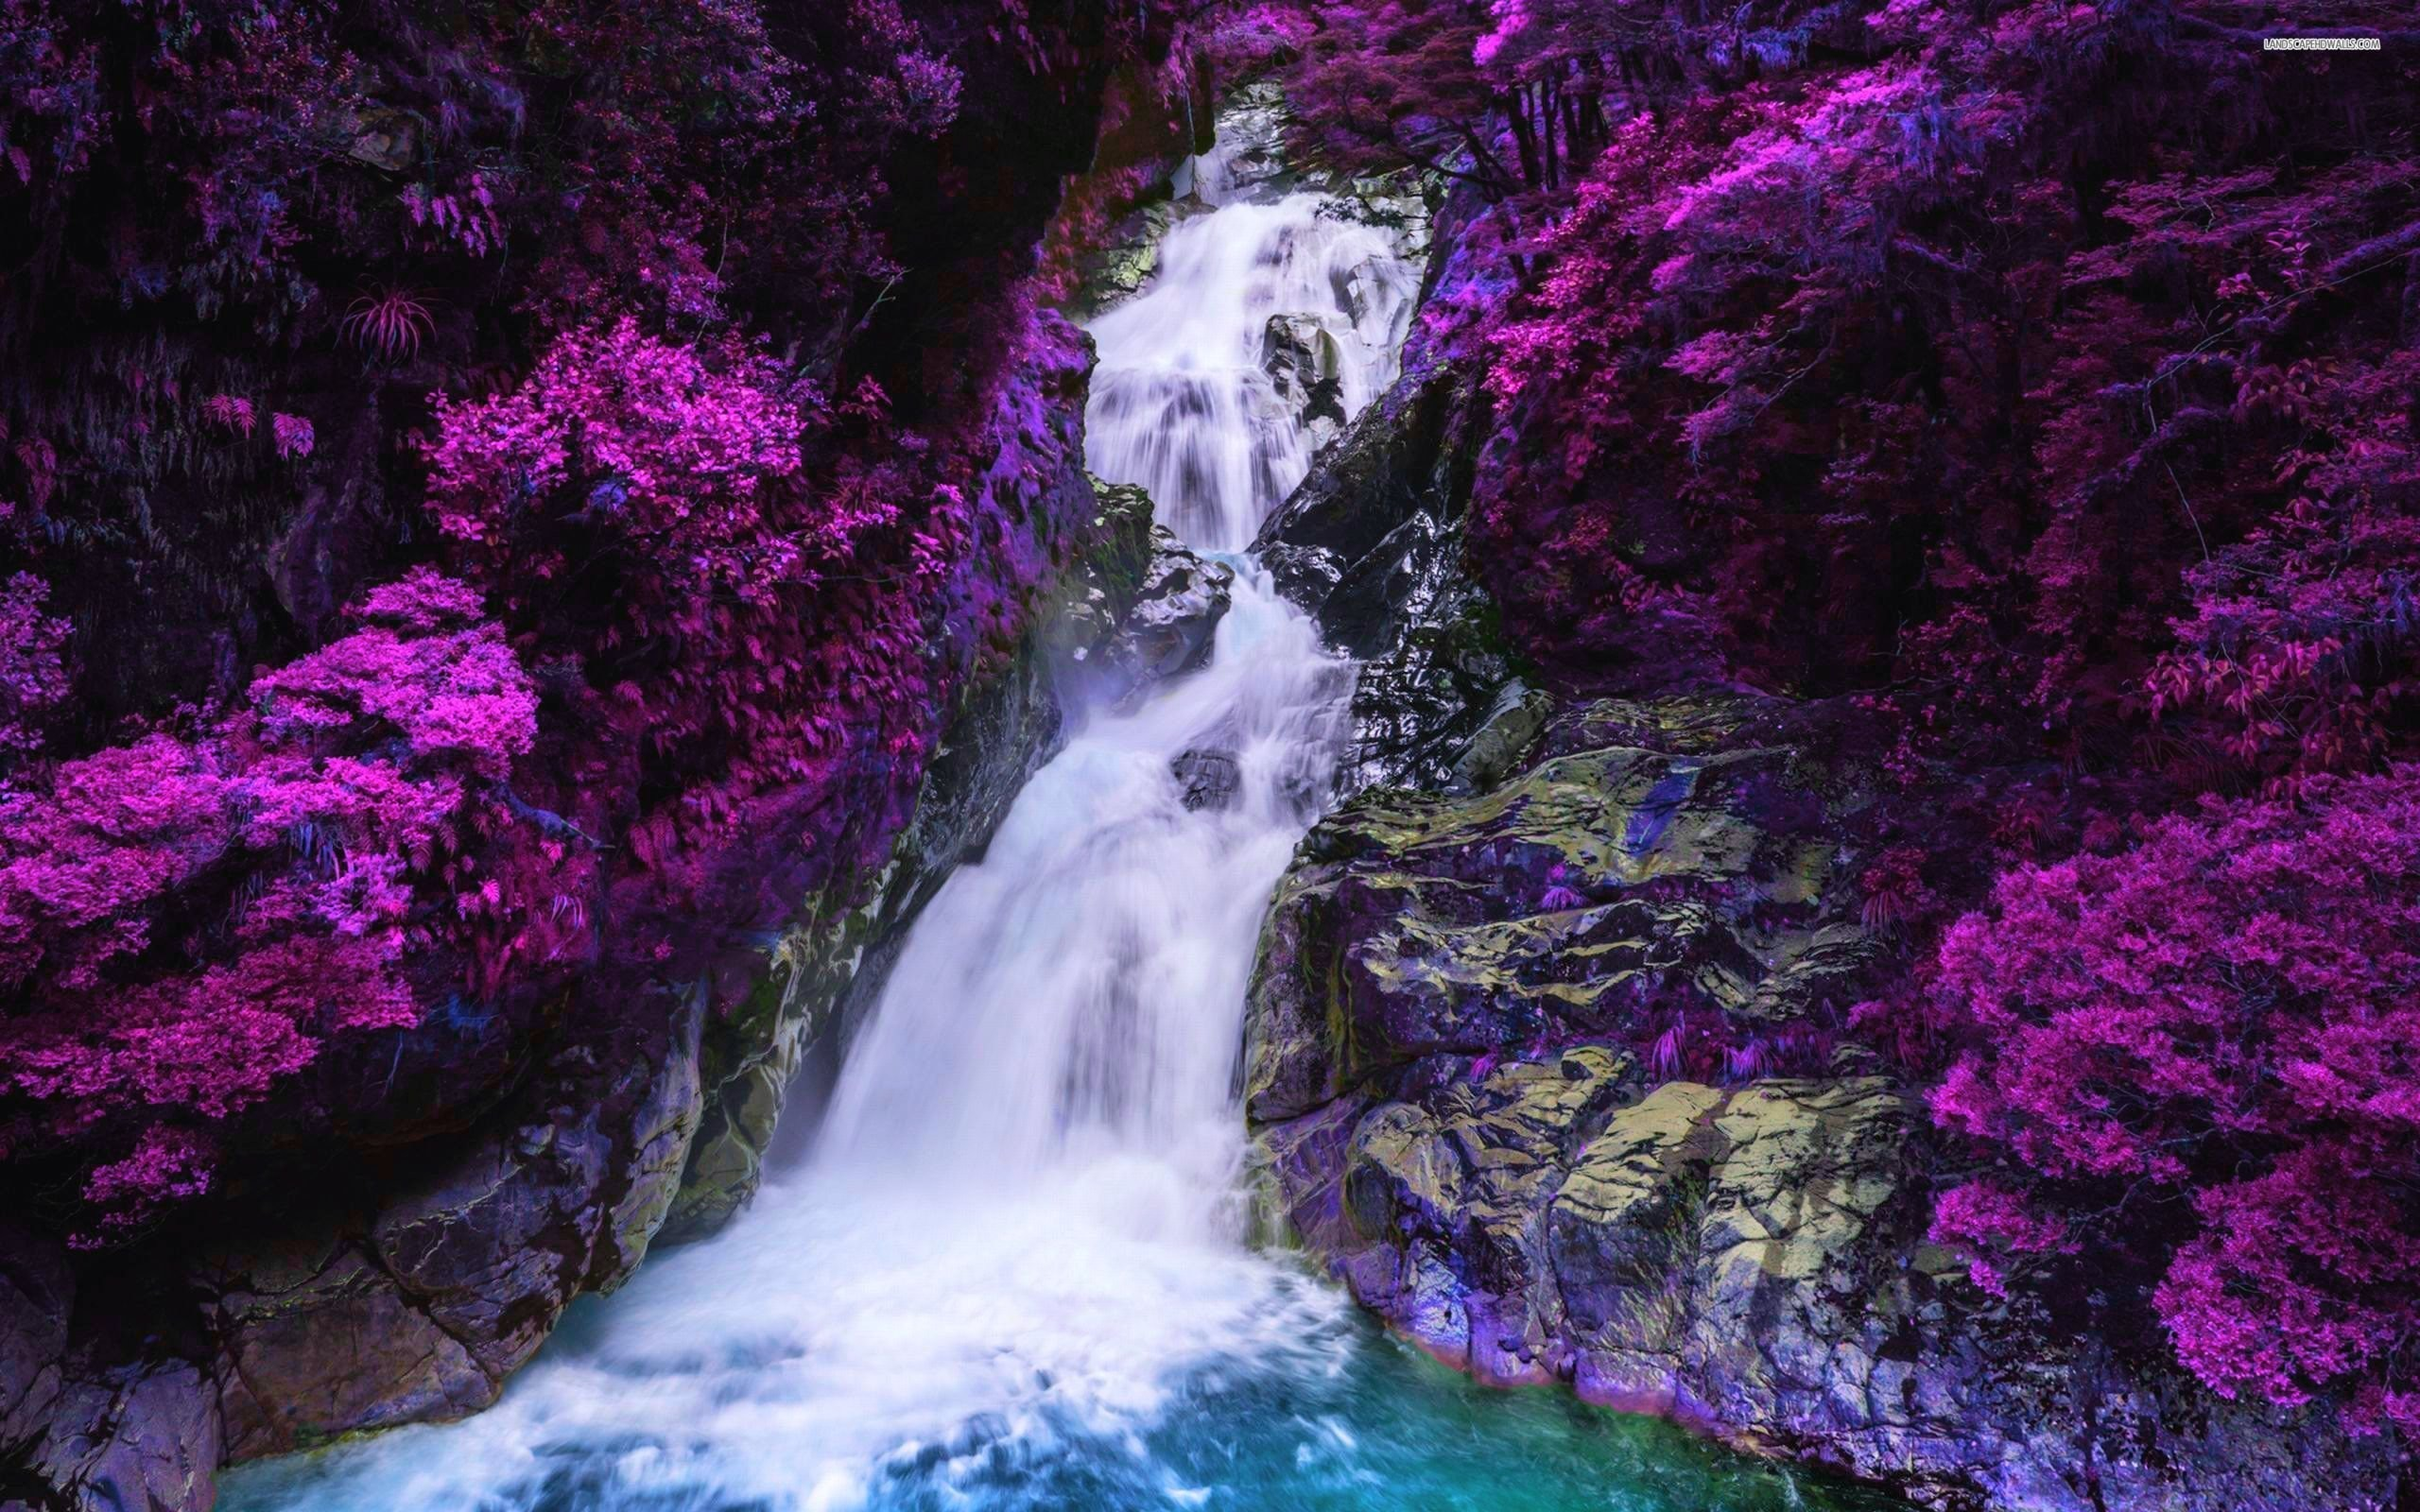 Res: 2560x1600, waterfall surrounded by purple trees